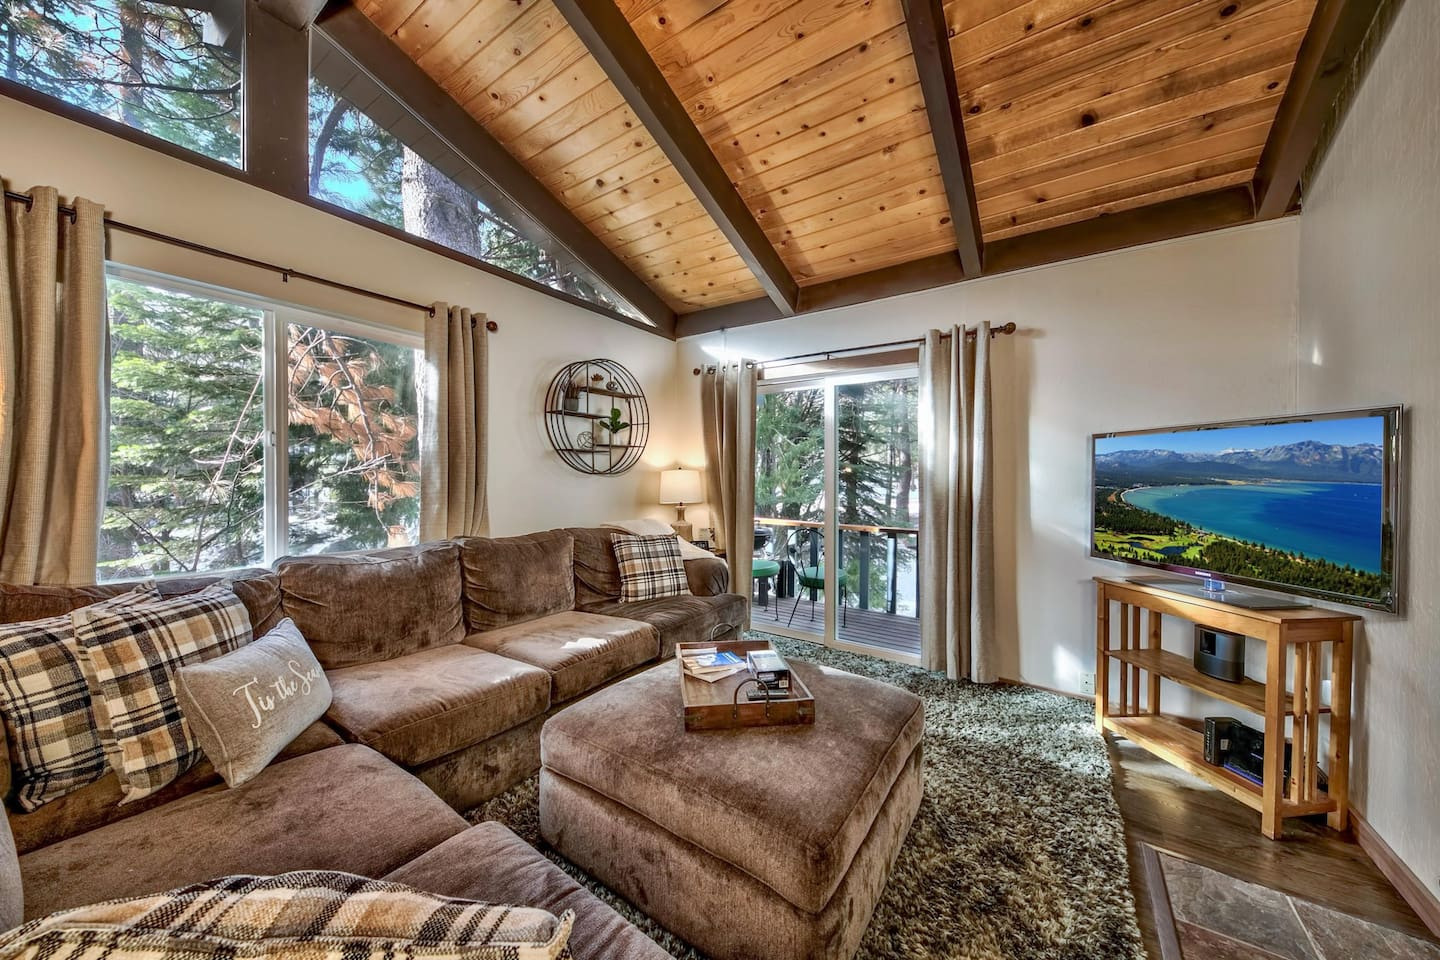 Cozy couch, gas fireplace, streaming tv to binge watch your favorite shows/movies, bose bluetooth speaker to stream your favorite music, and the sound of a mountain stream right outside the door.  Relax, recharge and reconnect!